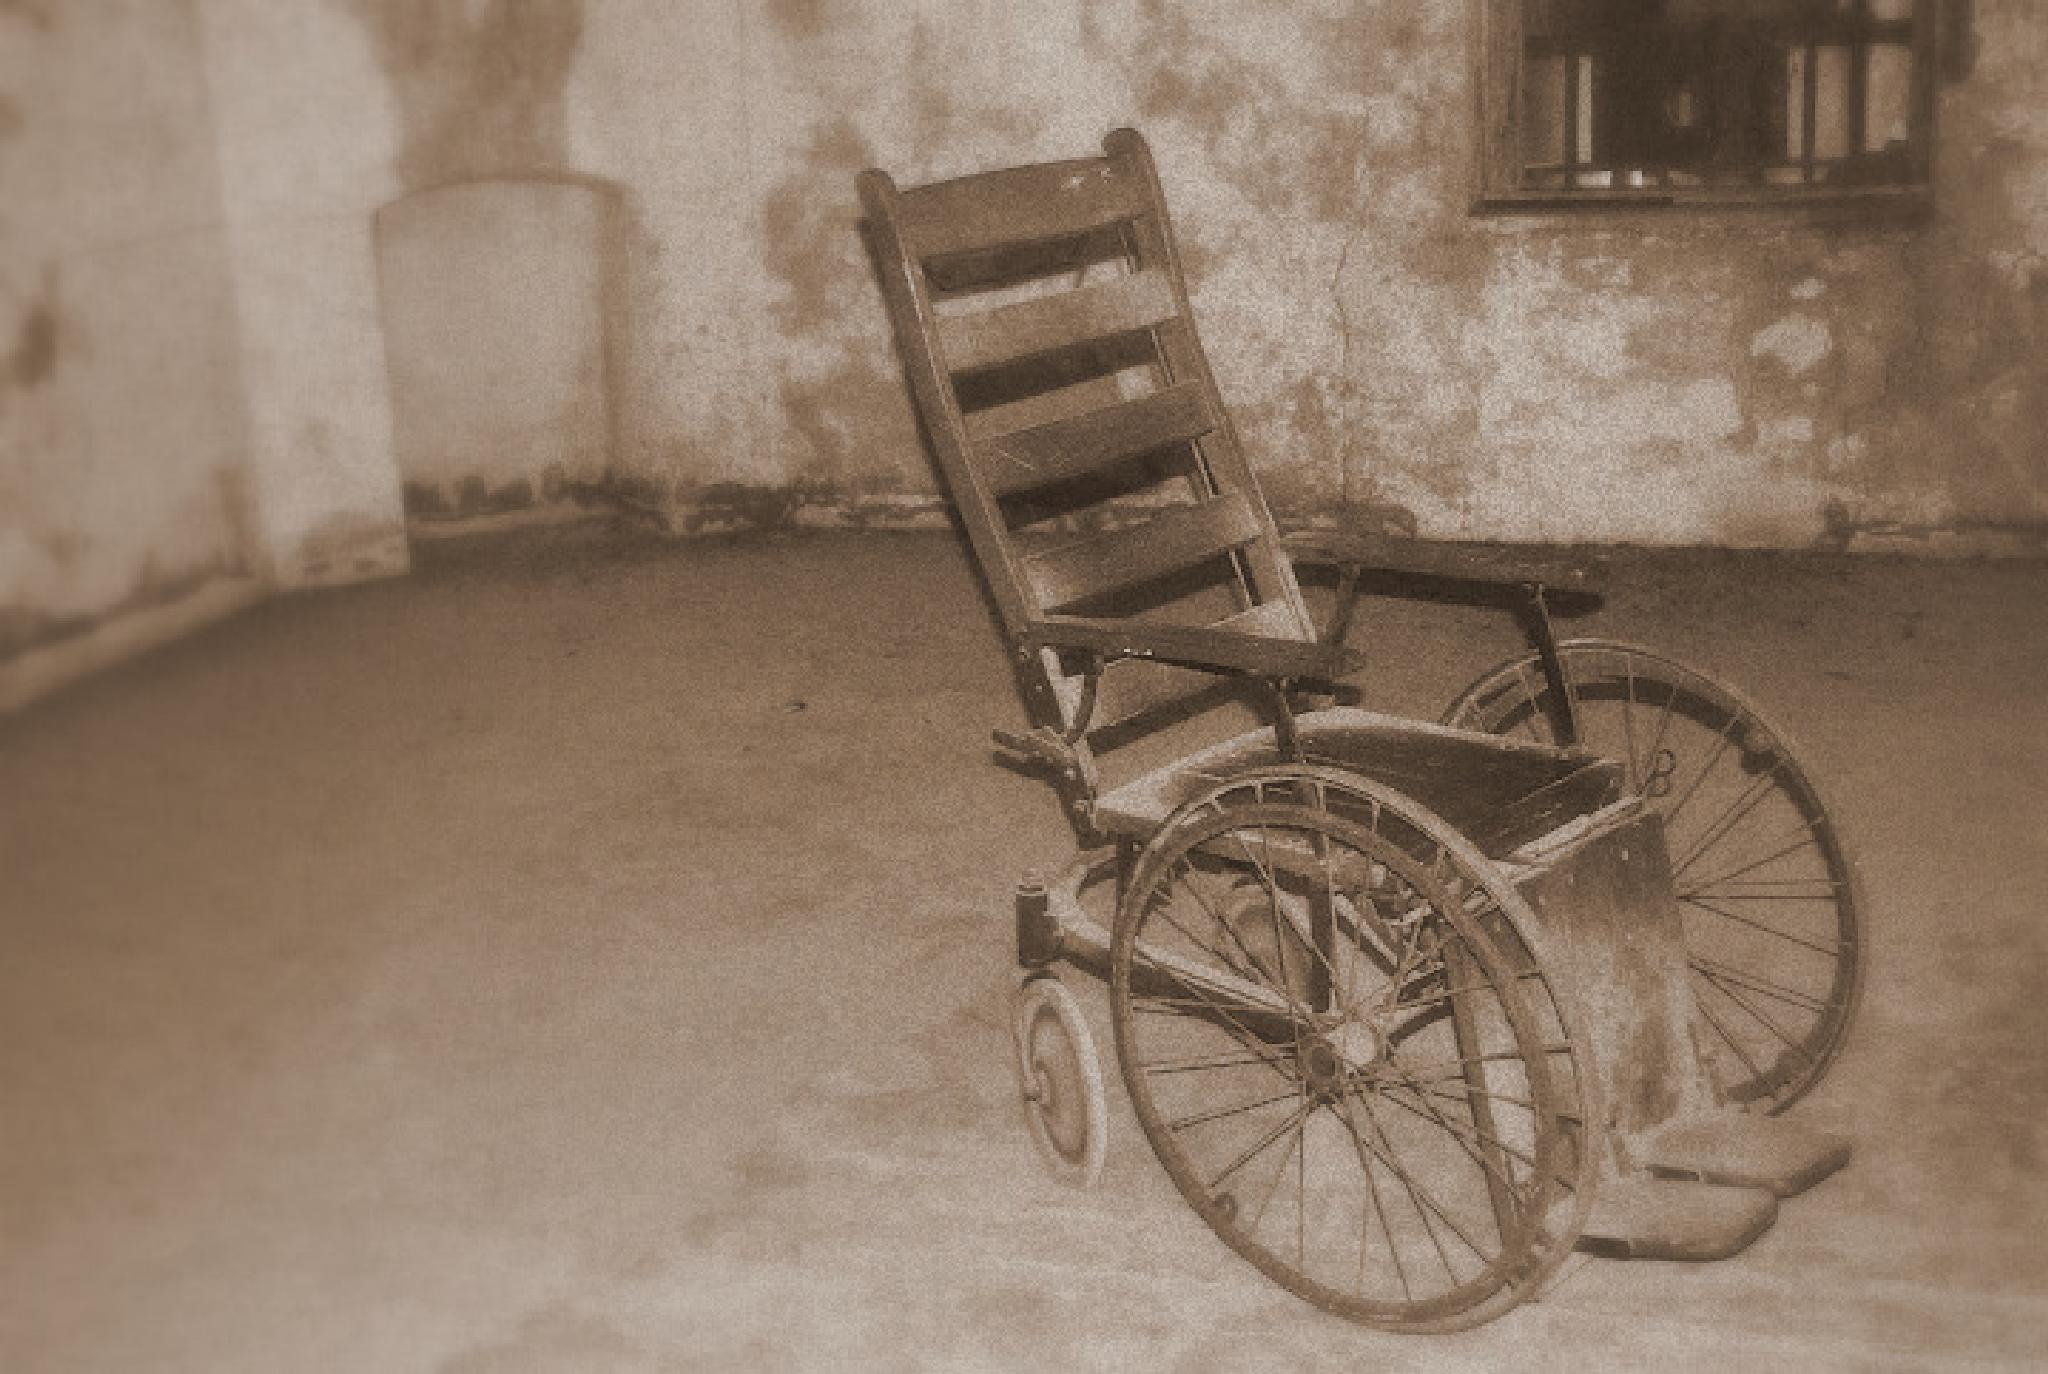 The Wheelchair by Shannon Smith